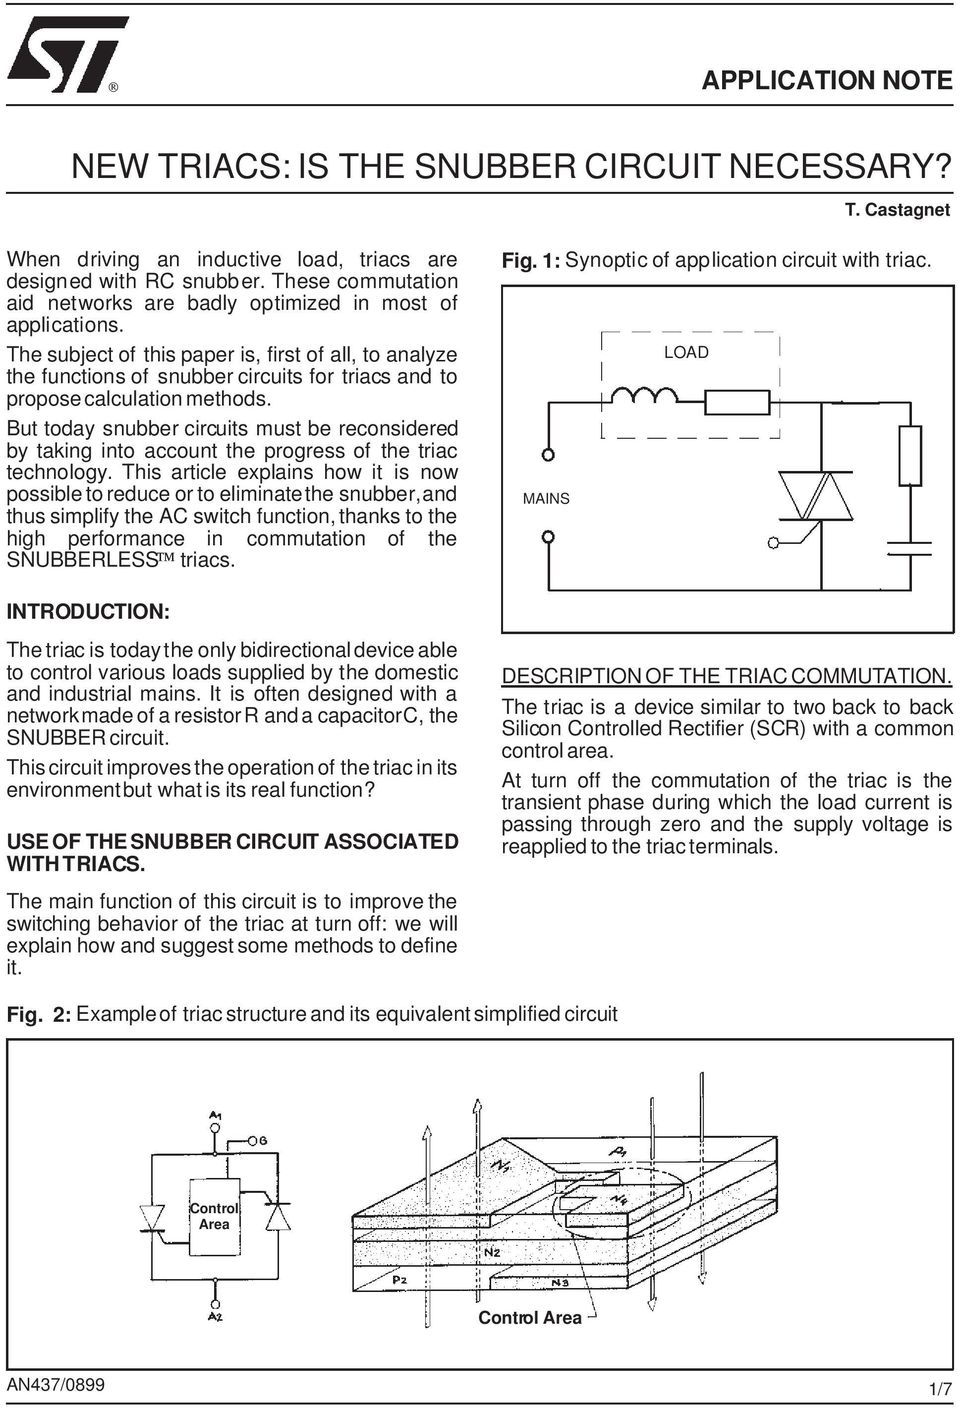 New Triacs Is The Snubber Circuit Necessary Pdf Scr And Triac Triggering With A Positive Power Supply Subject Of This Paper First All To Analyze Functions